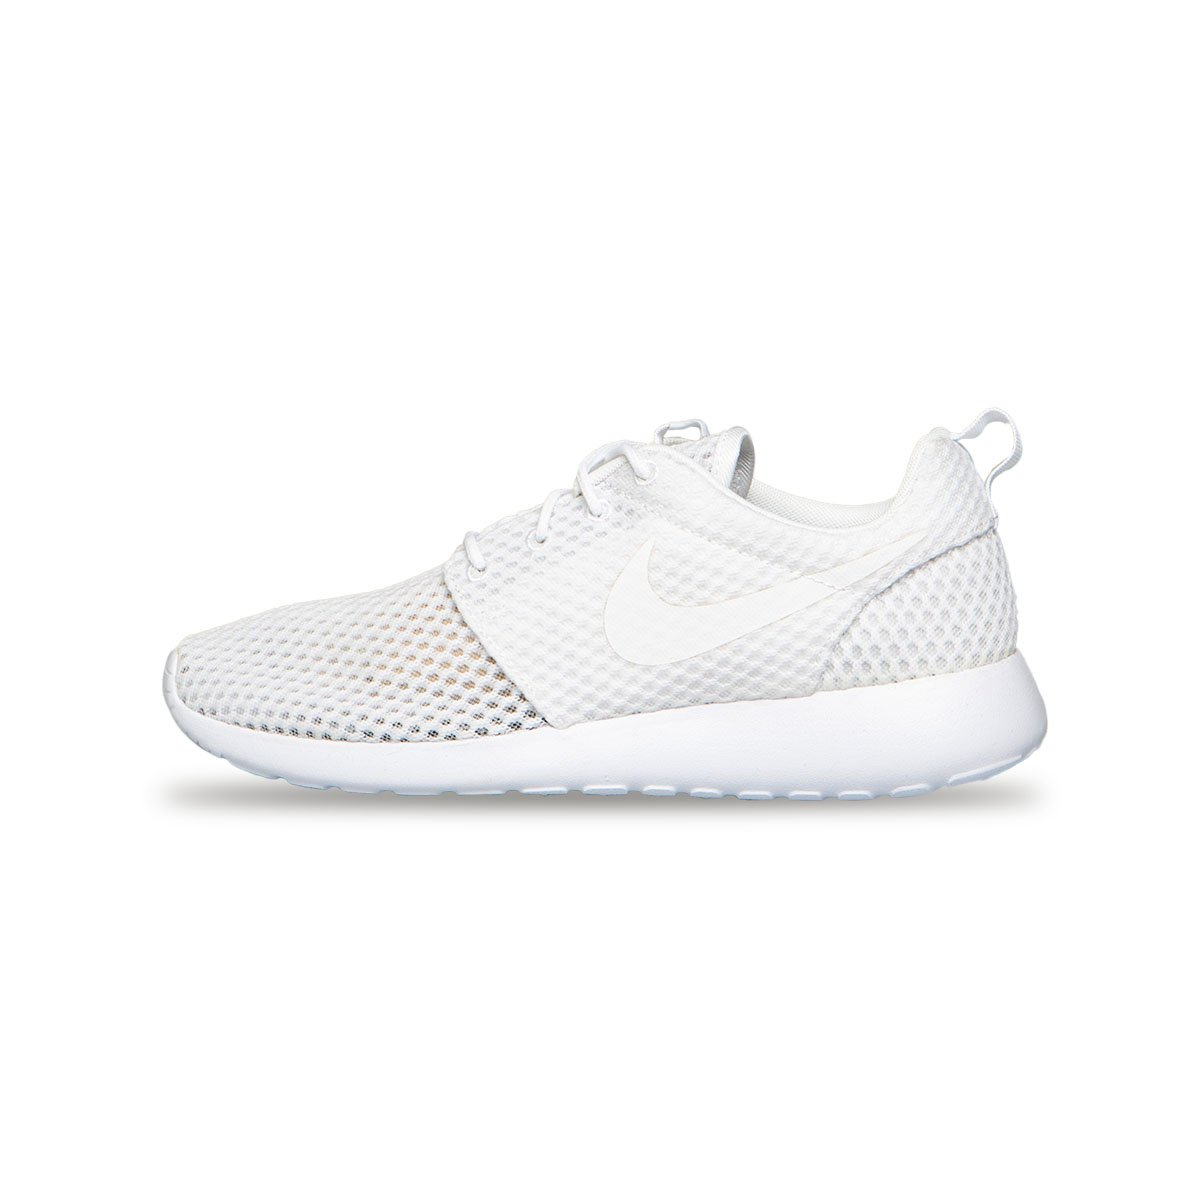 ea15c4e3e56b Nike Roshe One black   anthracite - sail (511881-010) ...